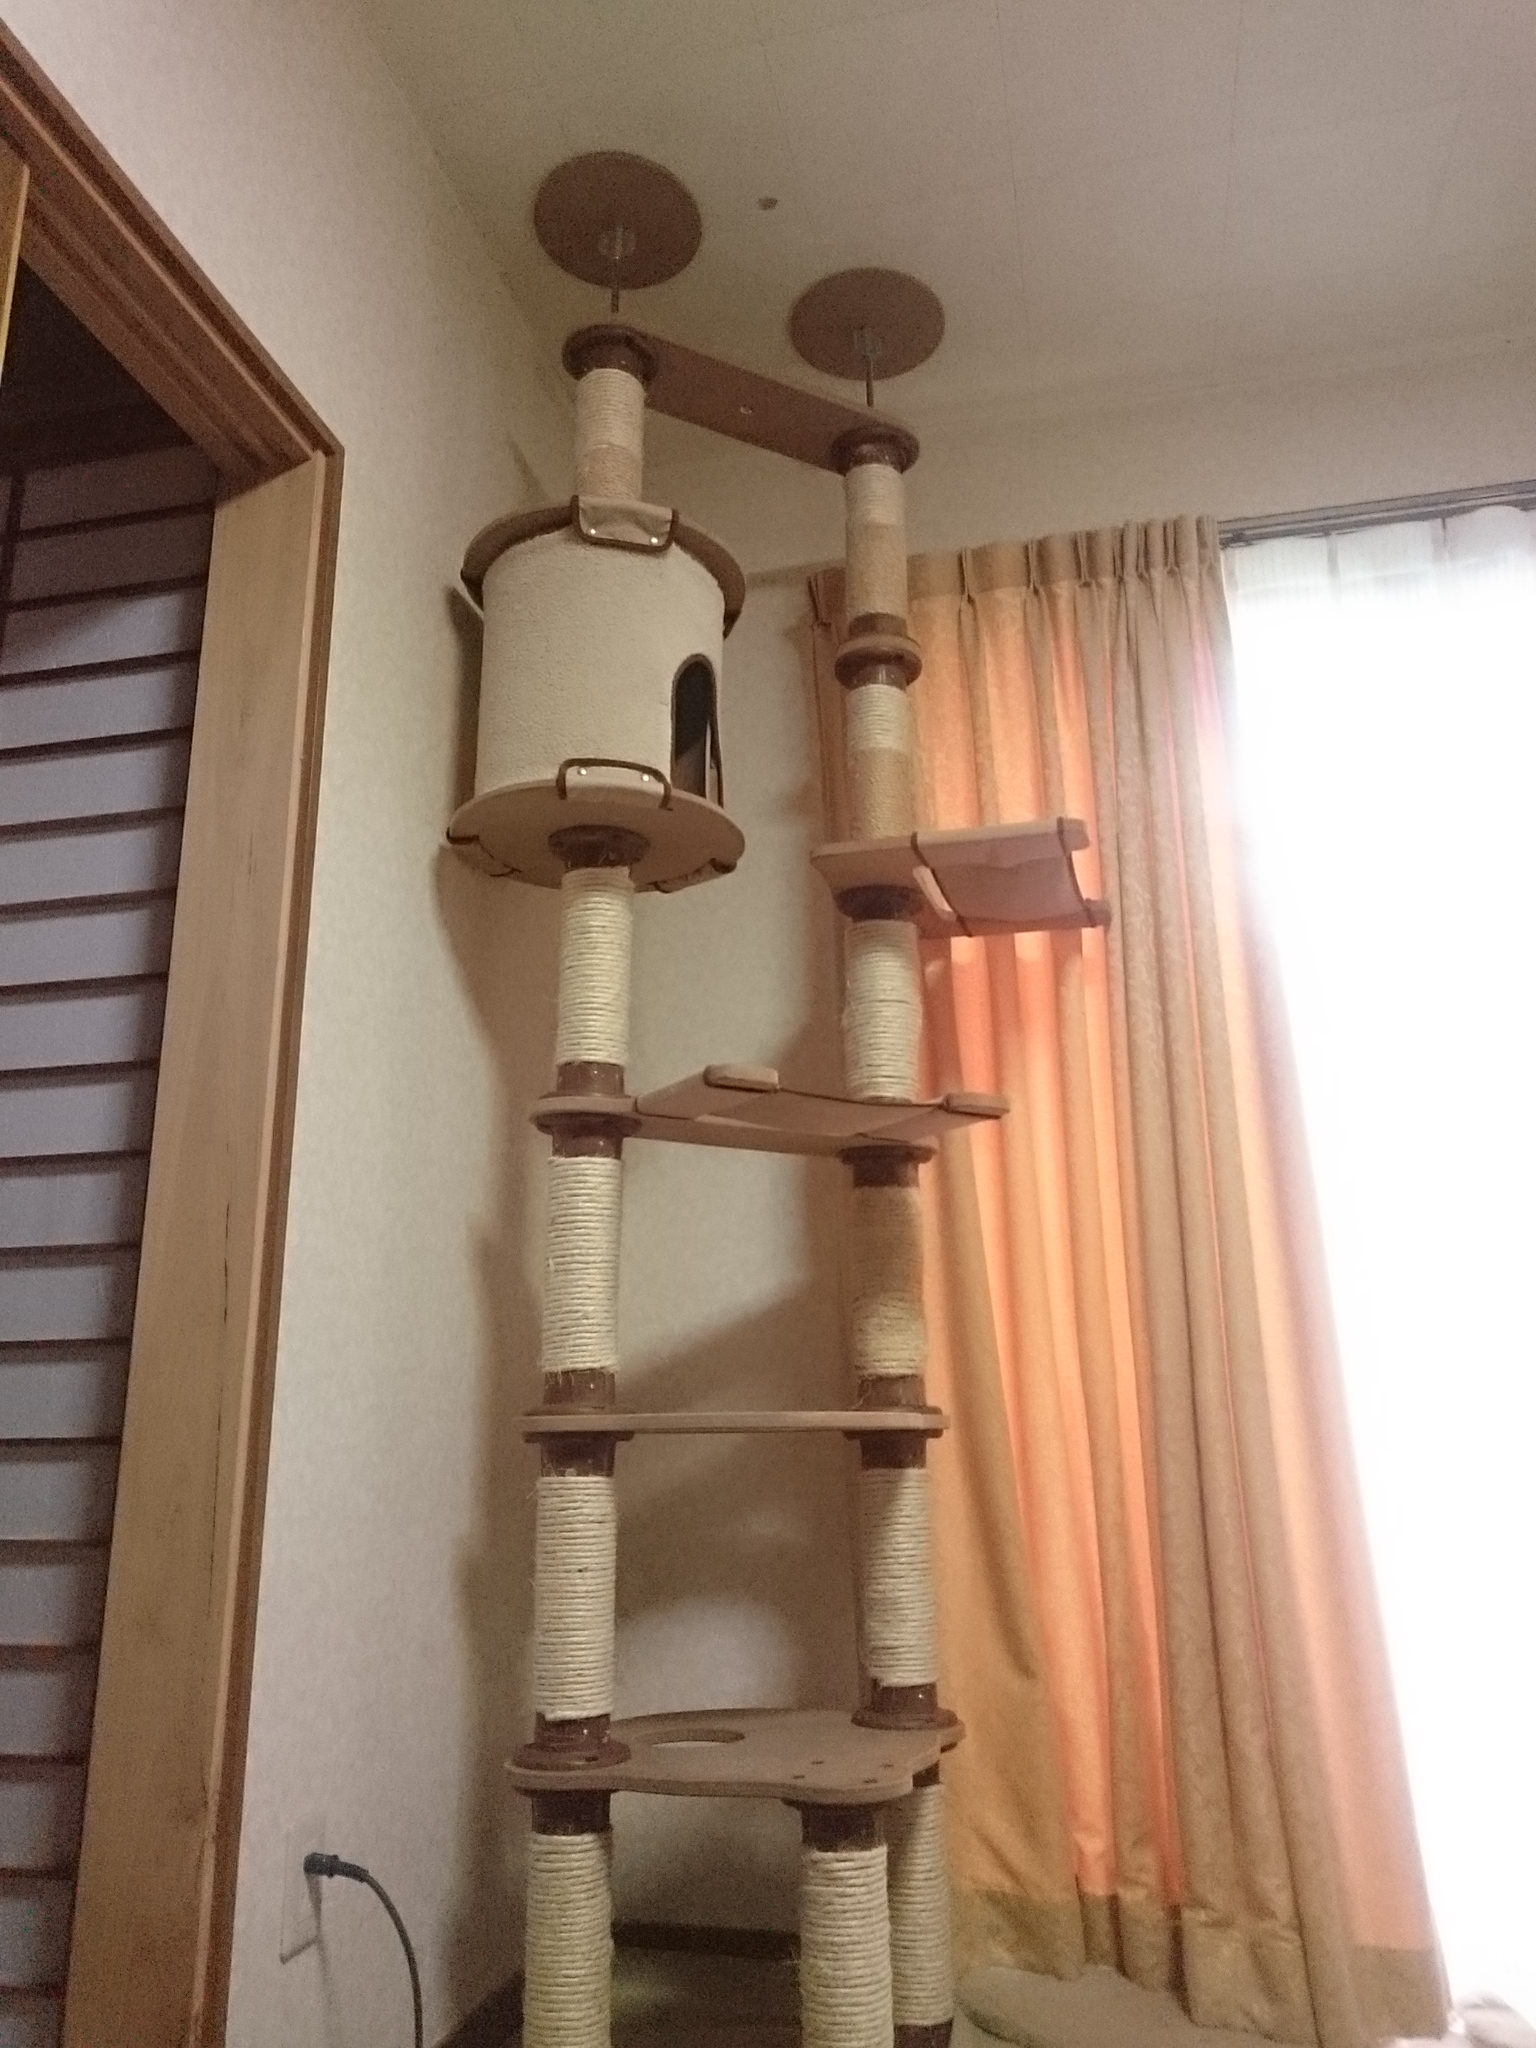 20151025-CatTower_After-X01.jpg